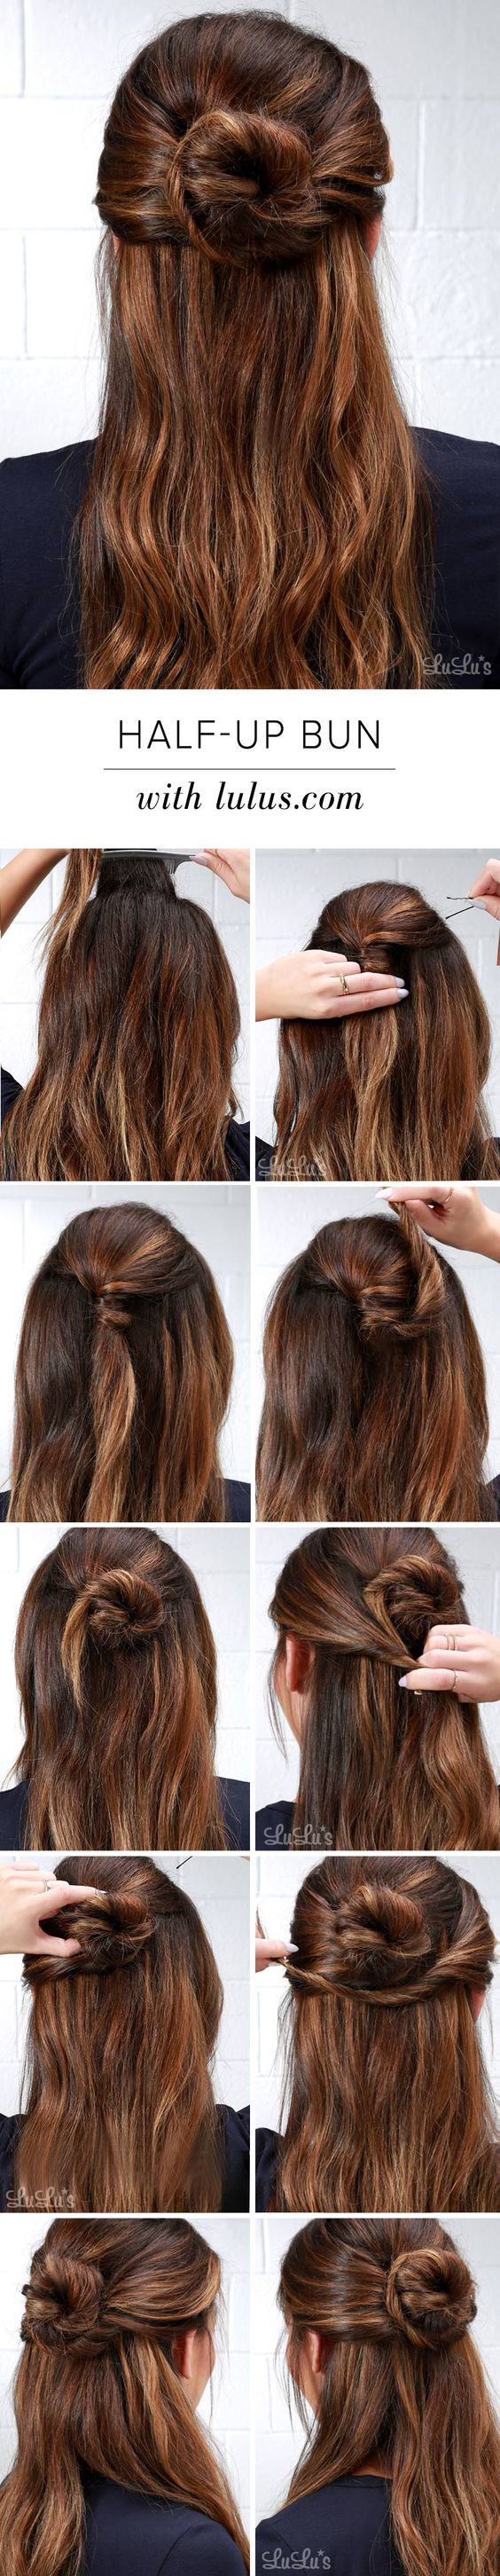 12-cute-and-easy-hairstyles-that-can-be-done-in-a-few-minutes